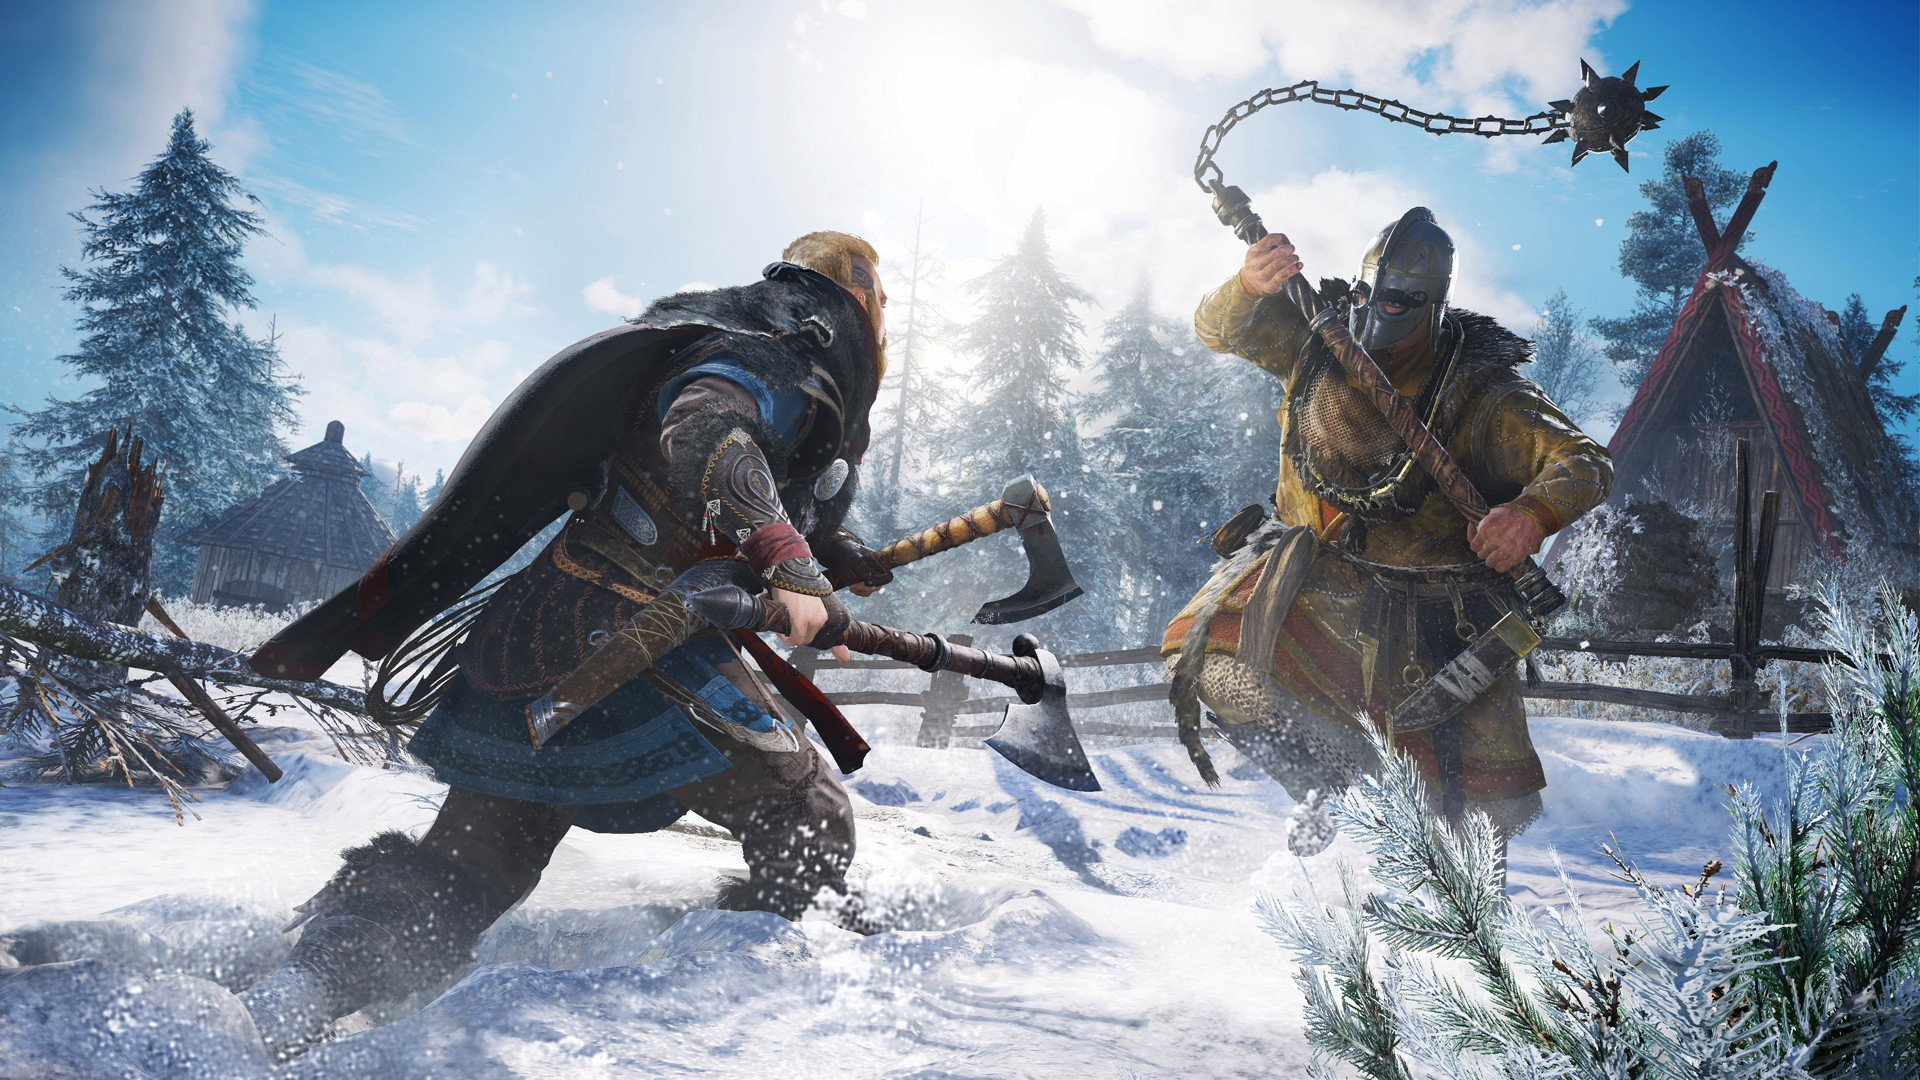 Report Confirms That Assassin's Creed Valhalla Will Run At 4K And 60FPS On PlayStation 5